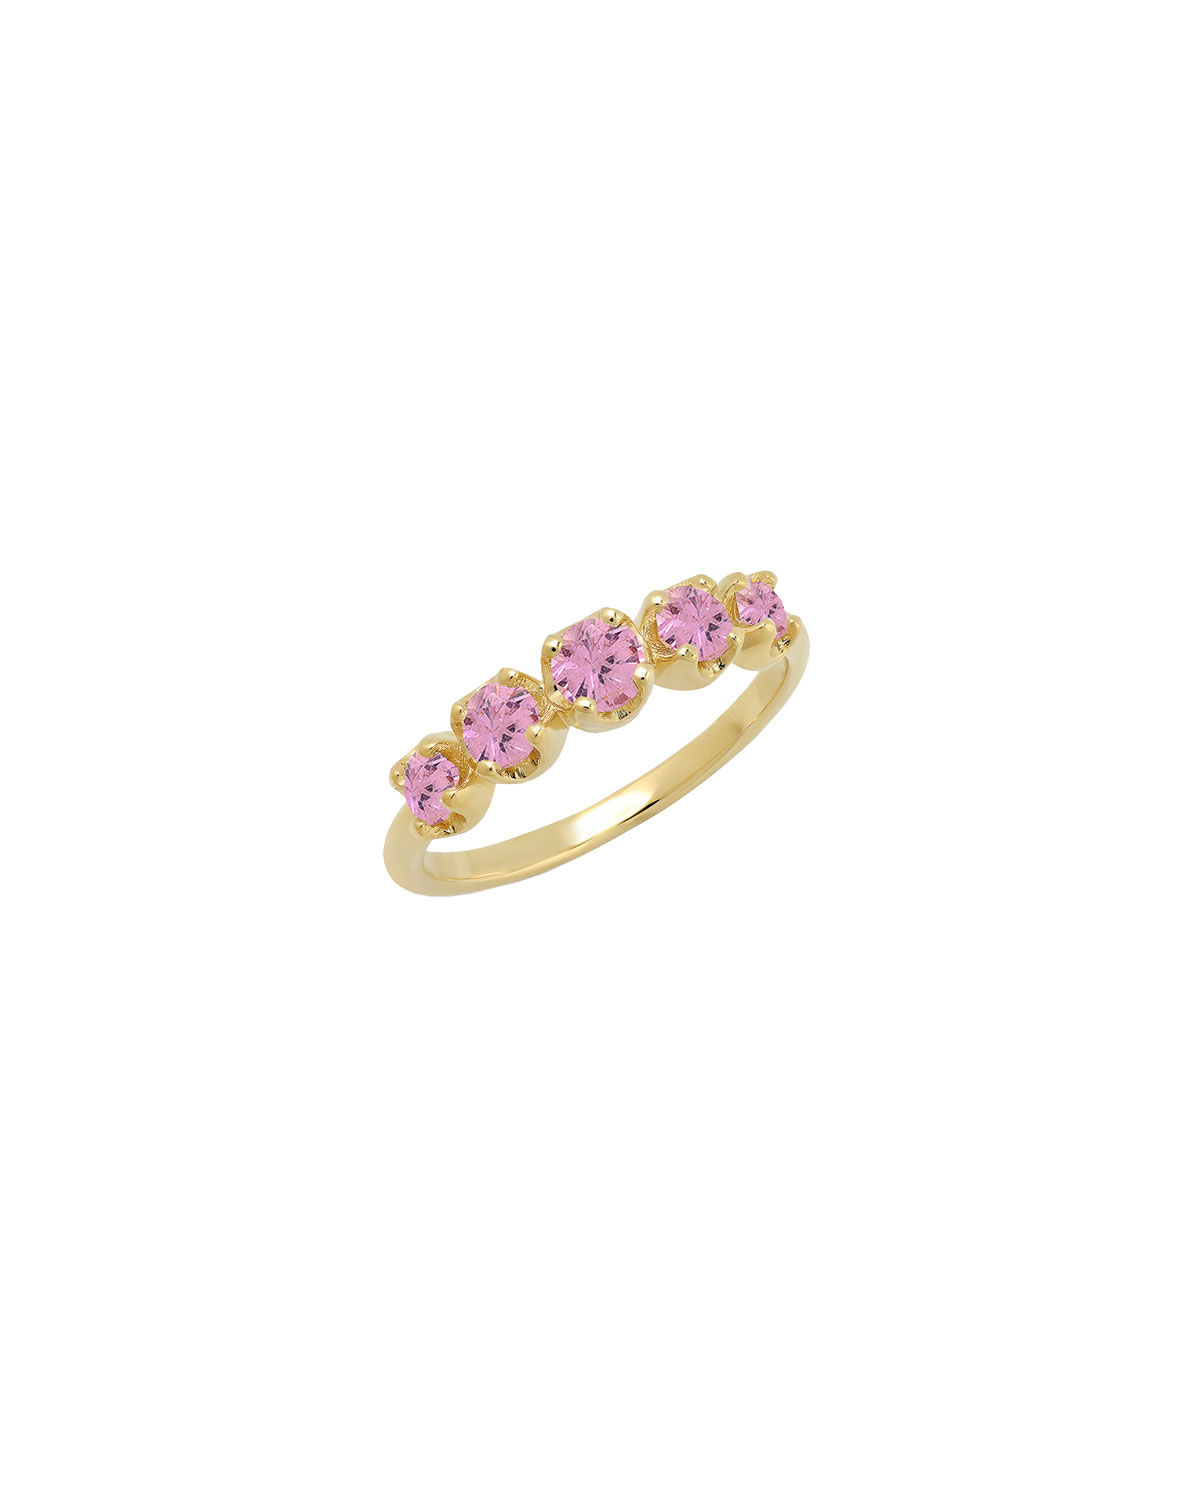 Graduated Stone Ring in Pink Sapphires, Size 6.5